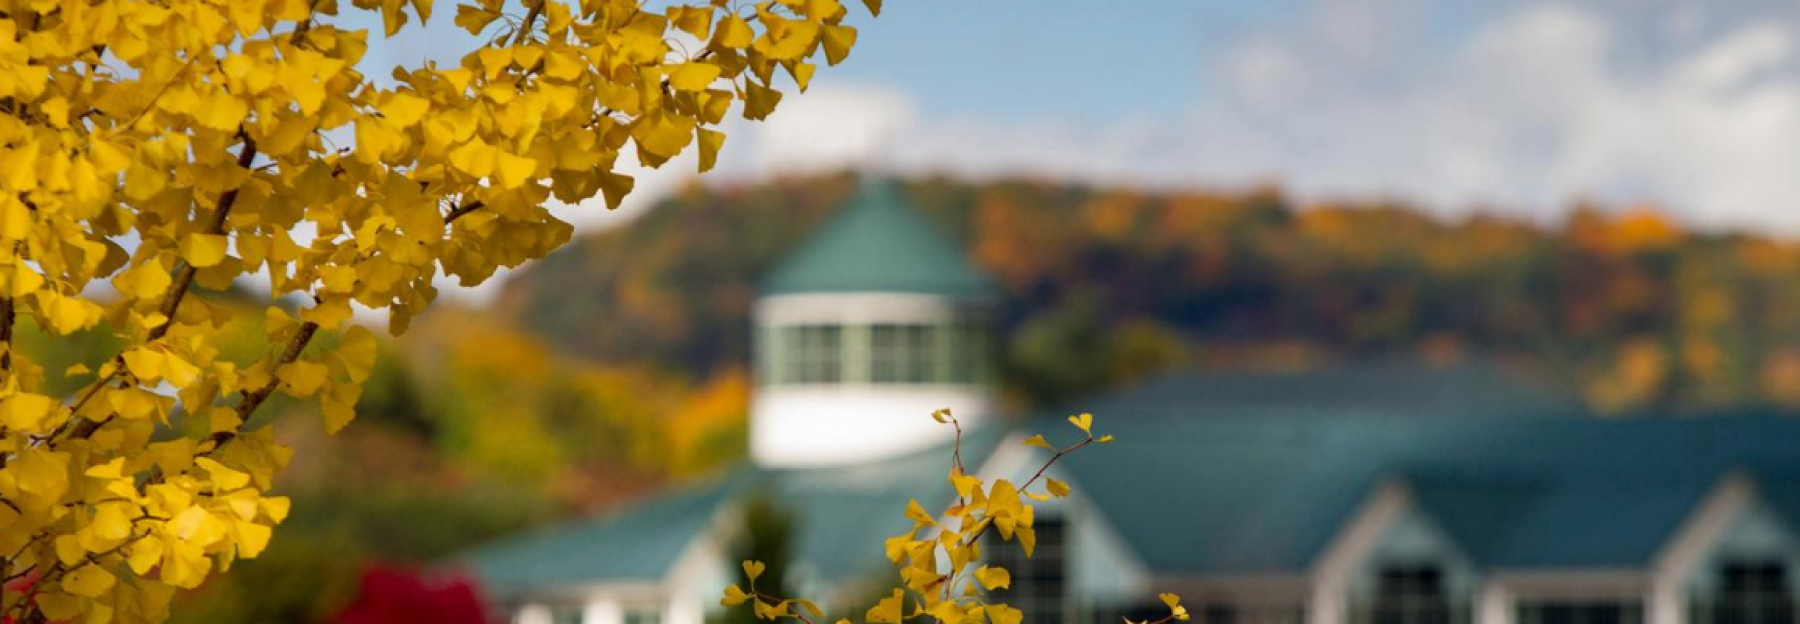 campus picture in the fall overlooking belk library